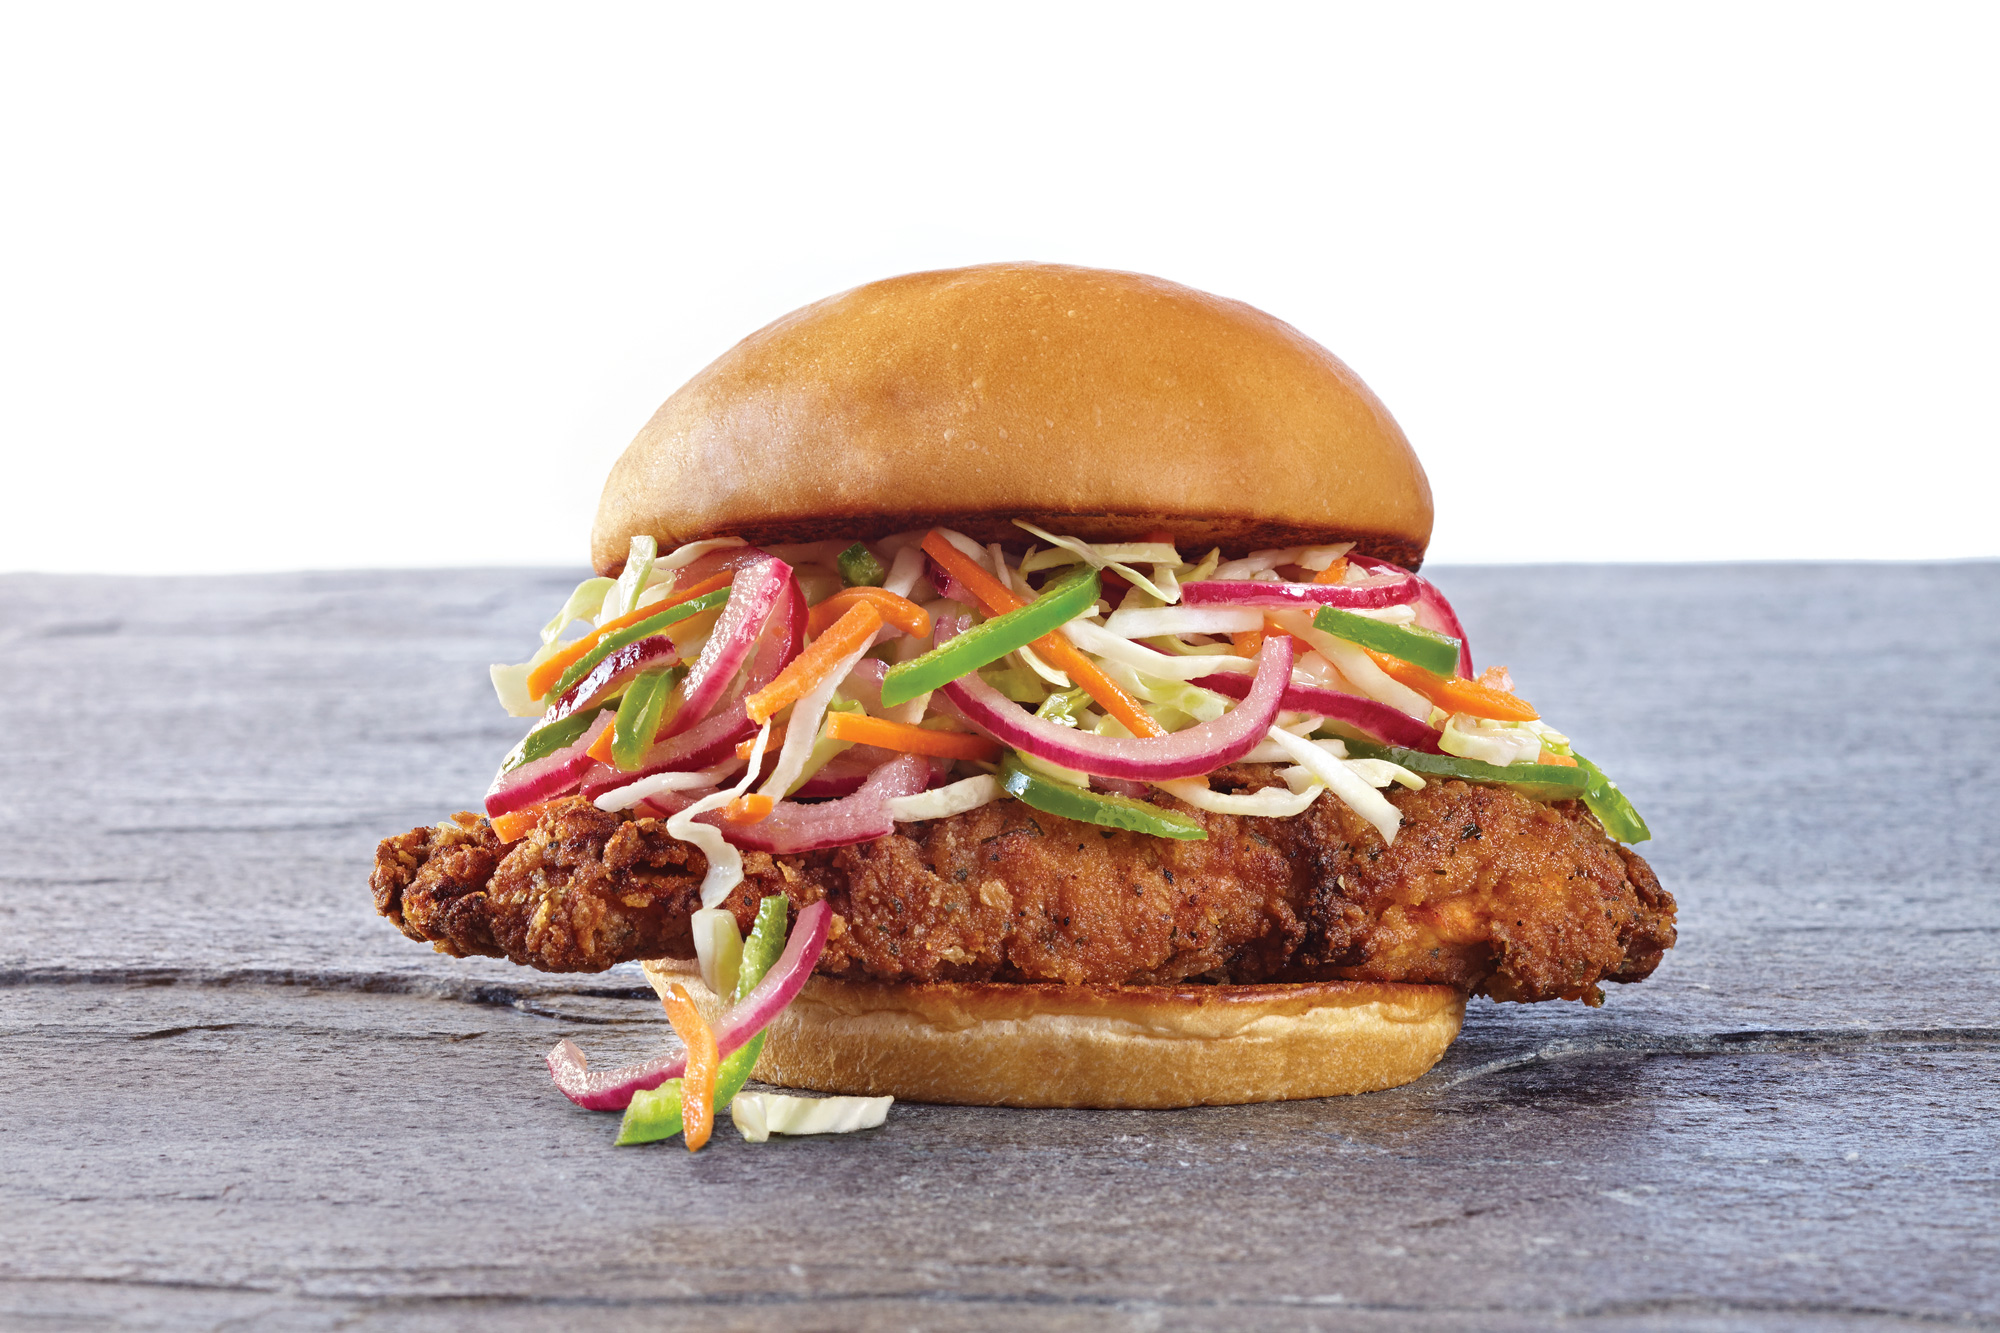 The Organic Coup's fried chicken sandwich